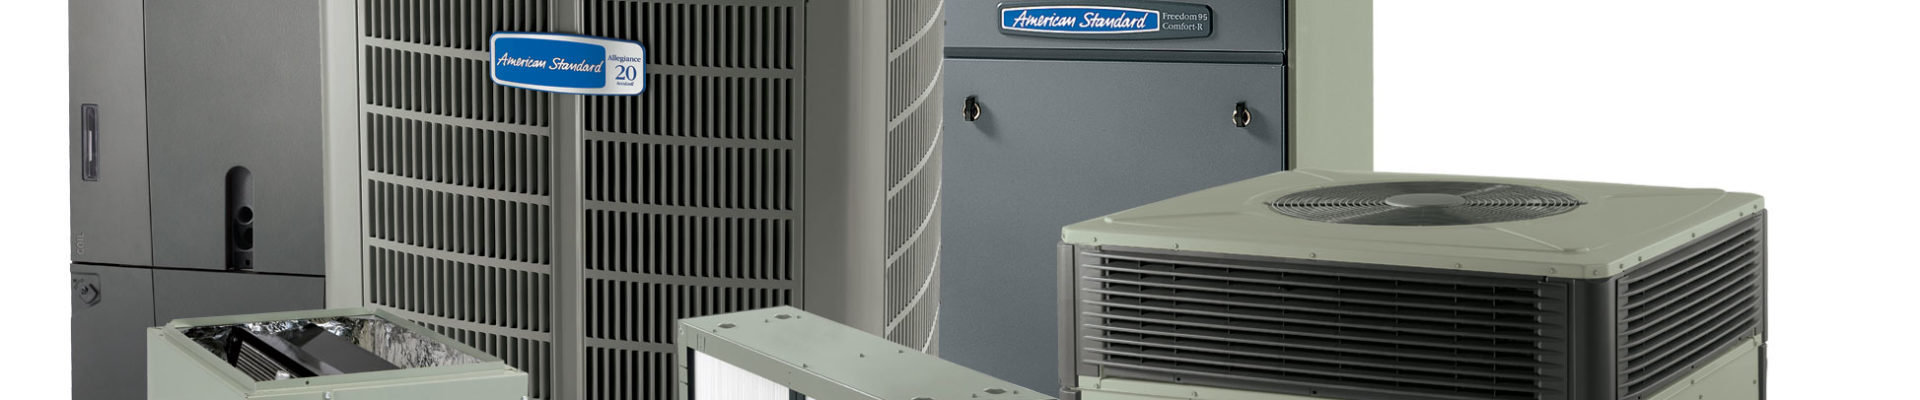 AC Repair Service In Tempe AZ To Make Your Unit More Reliable